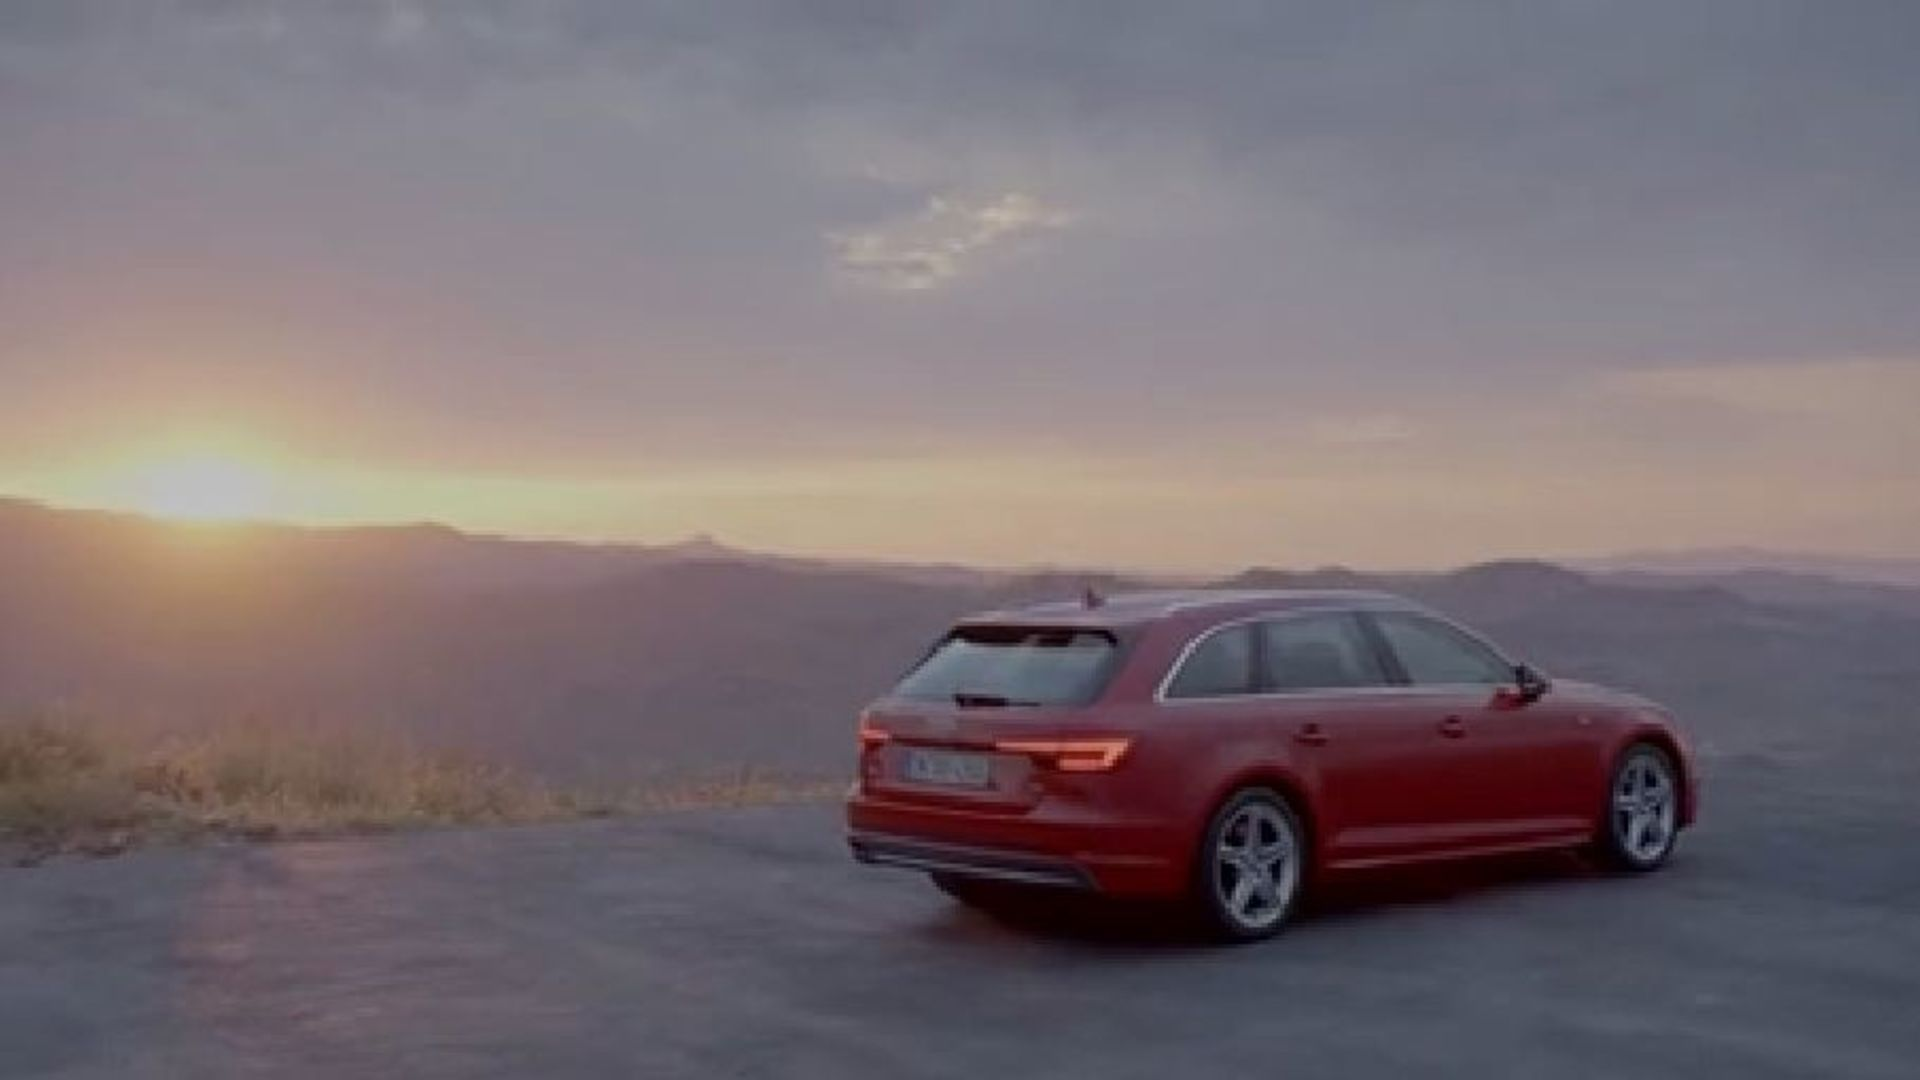 Audi A4 (2015) Emotion Trailer - Normal